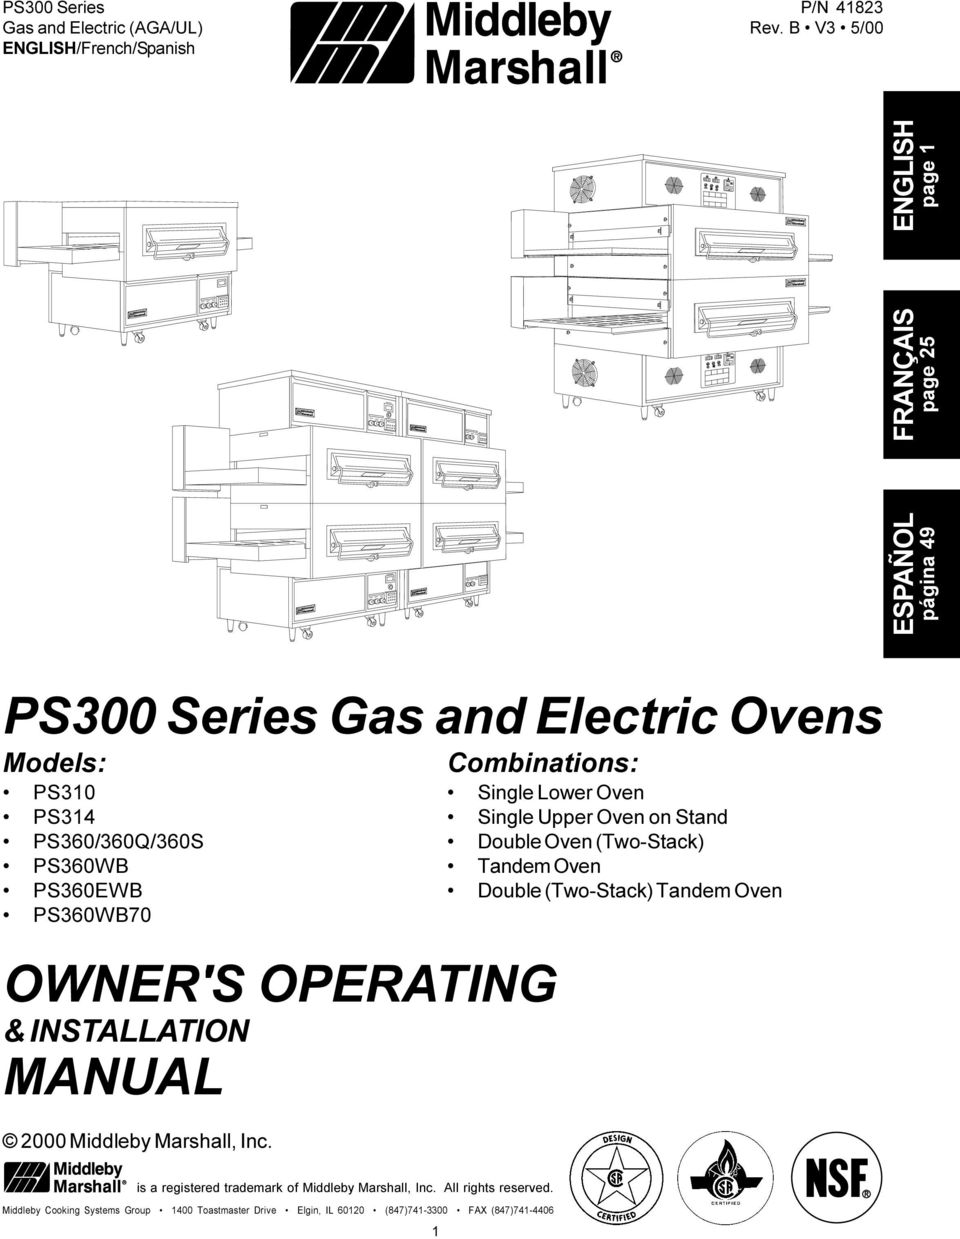 PS360WB70 OWNER'S OPERATING & INSTALLATION MANUAL 2000 Middleby Marshall, Inc.